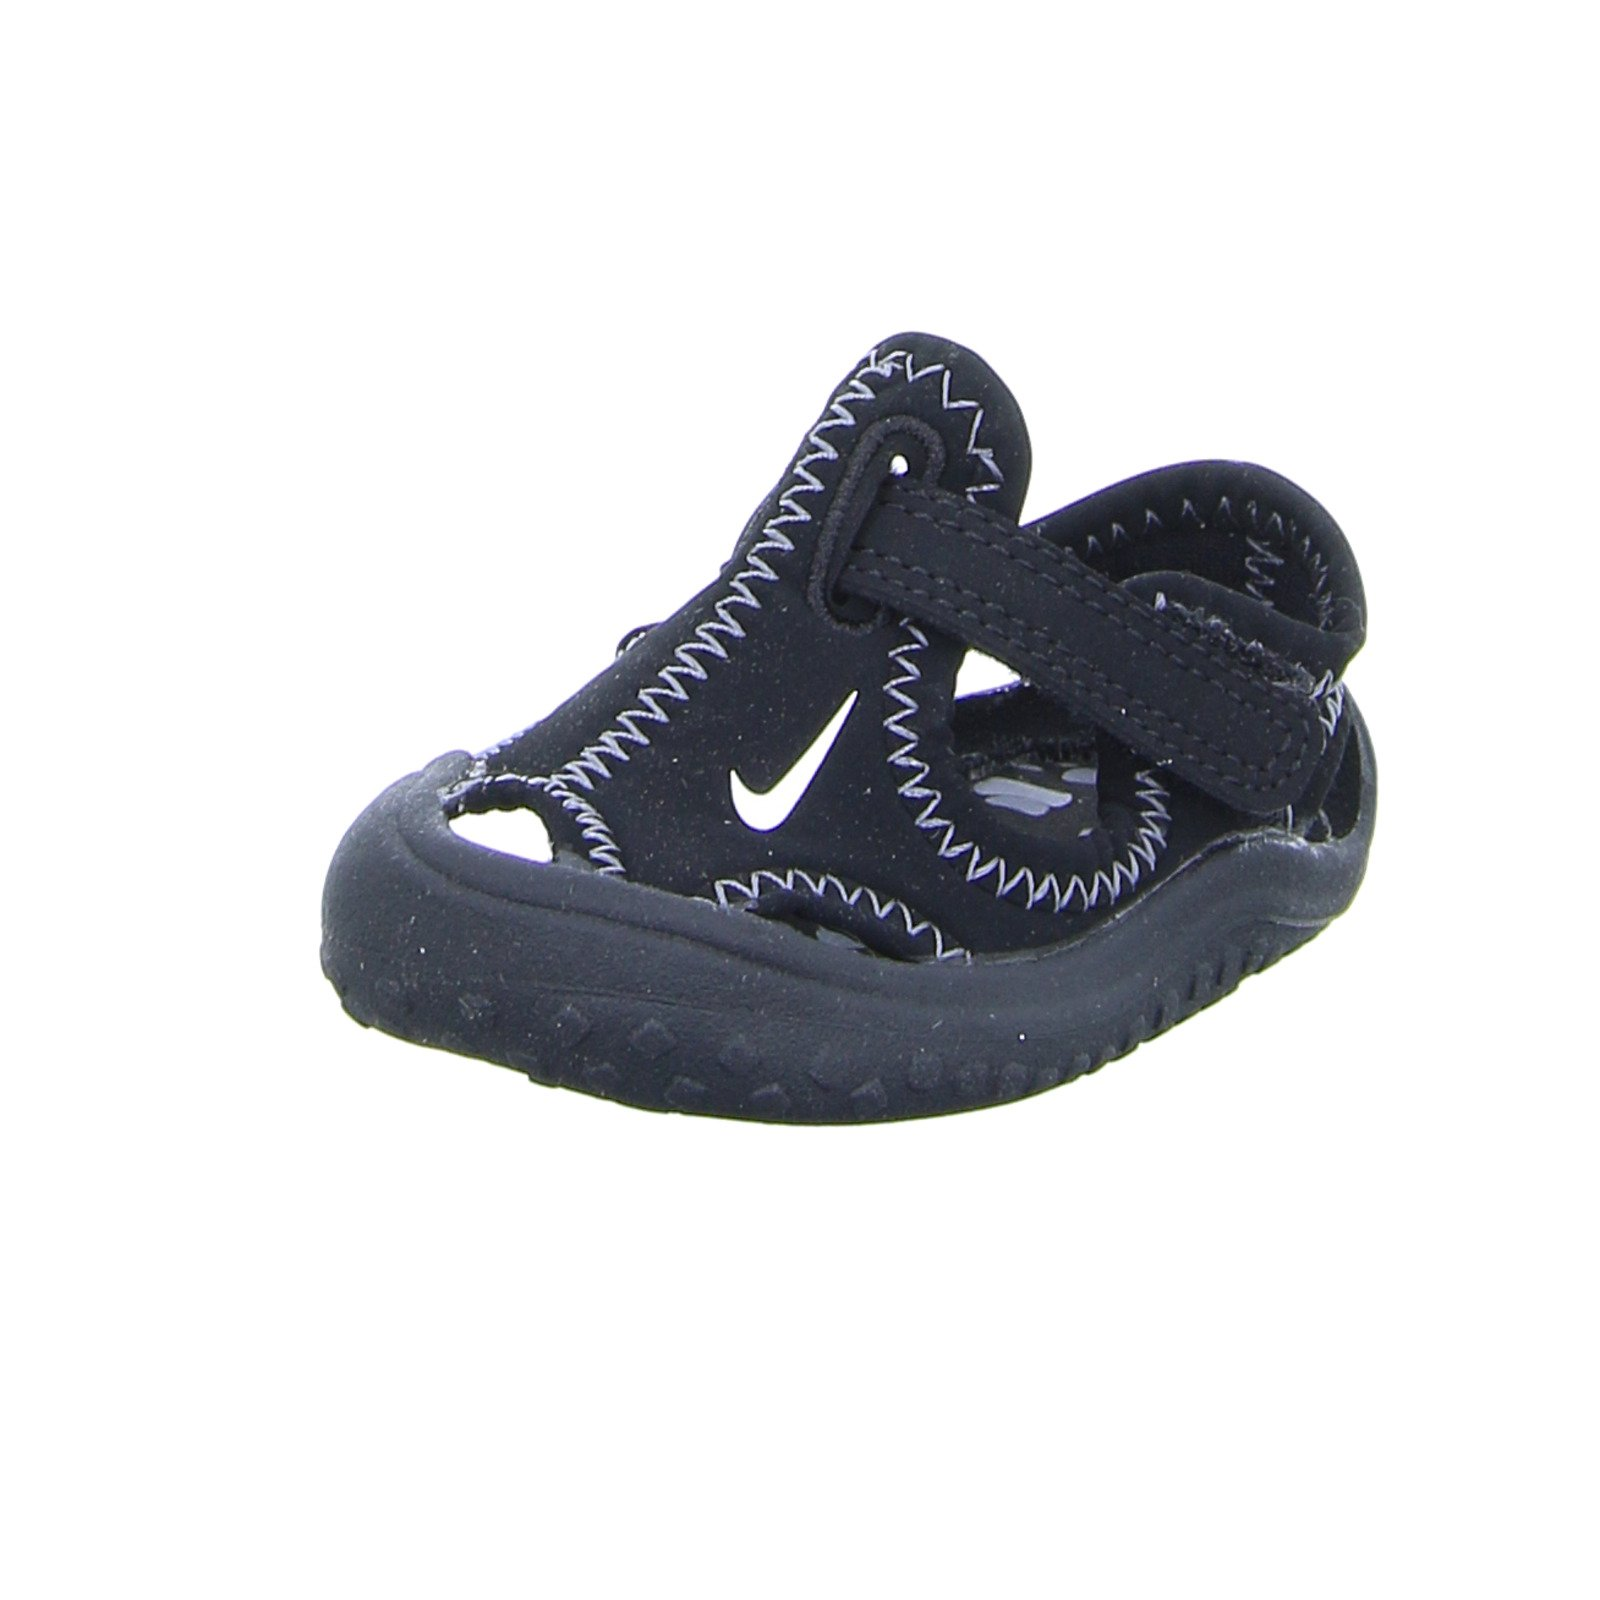 finest selection 13e3d 1f34c Galleon - NIKE Boys Sunray Protect (TD) Toddler Sandal